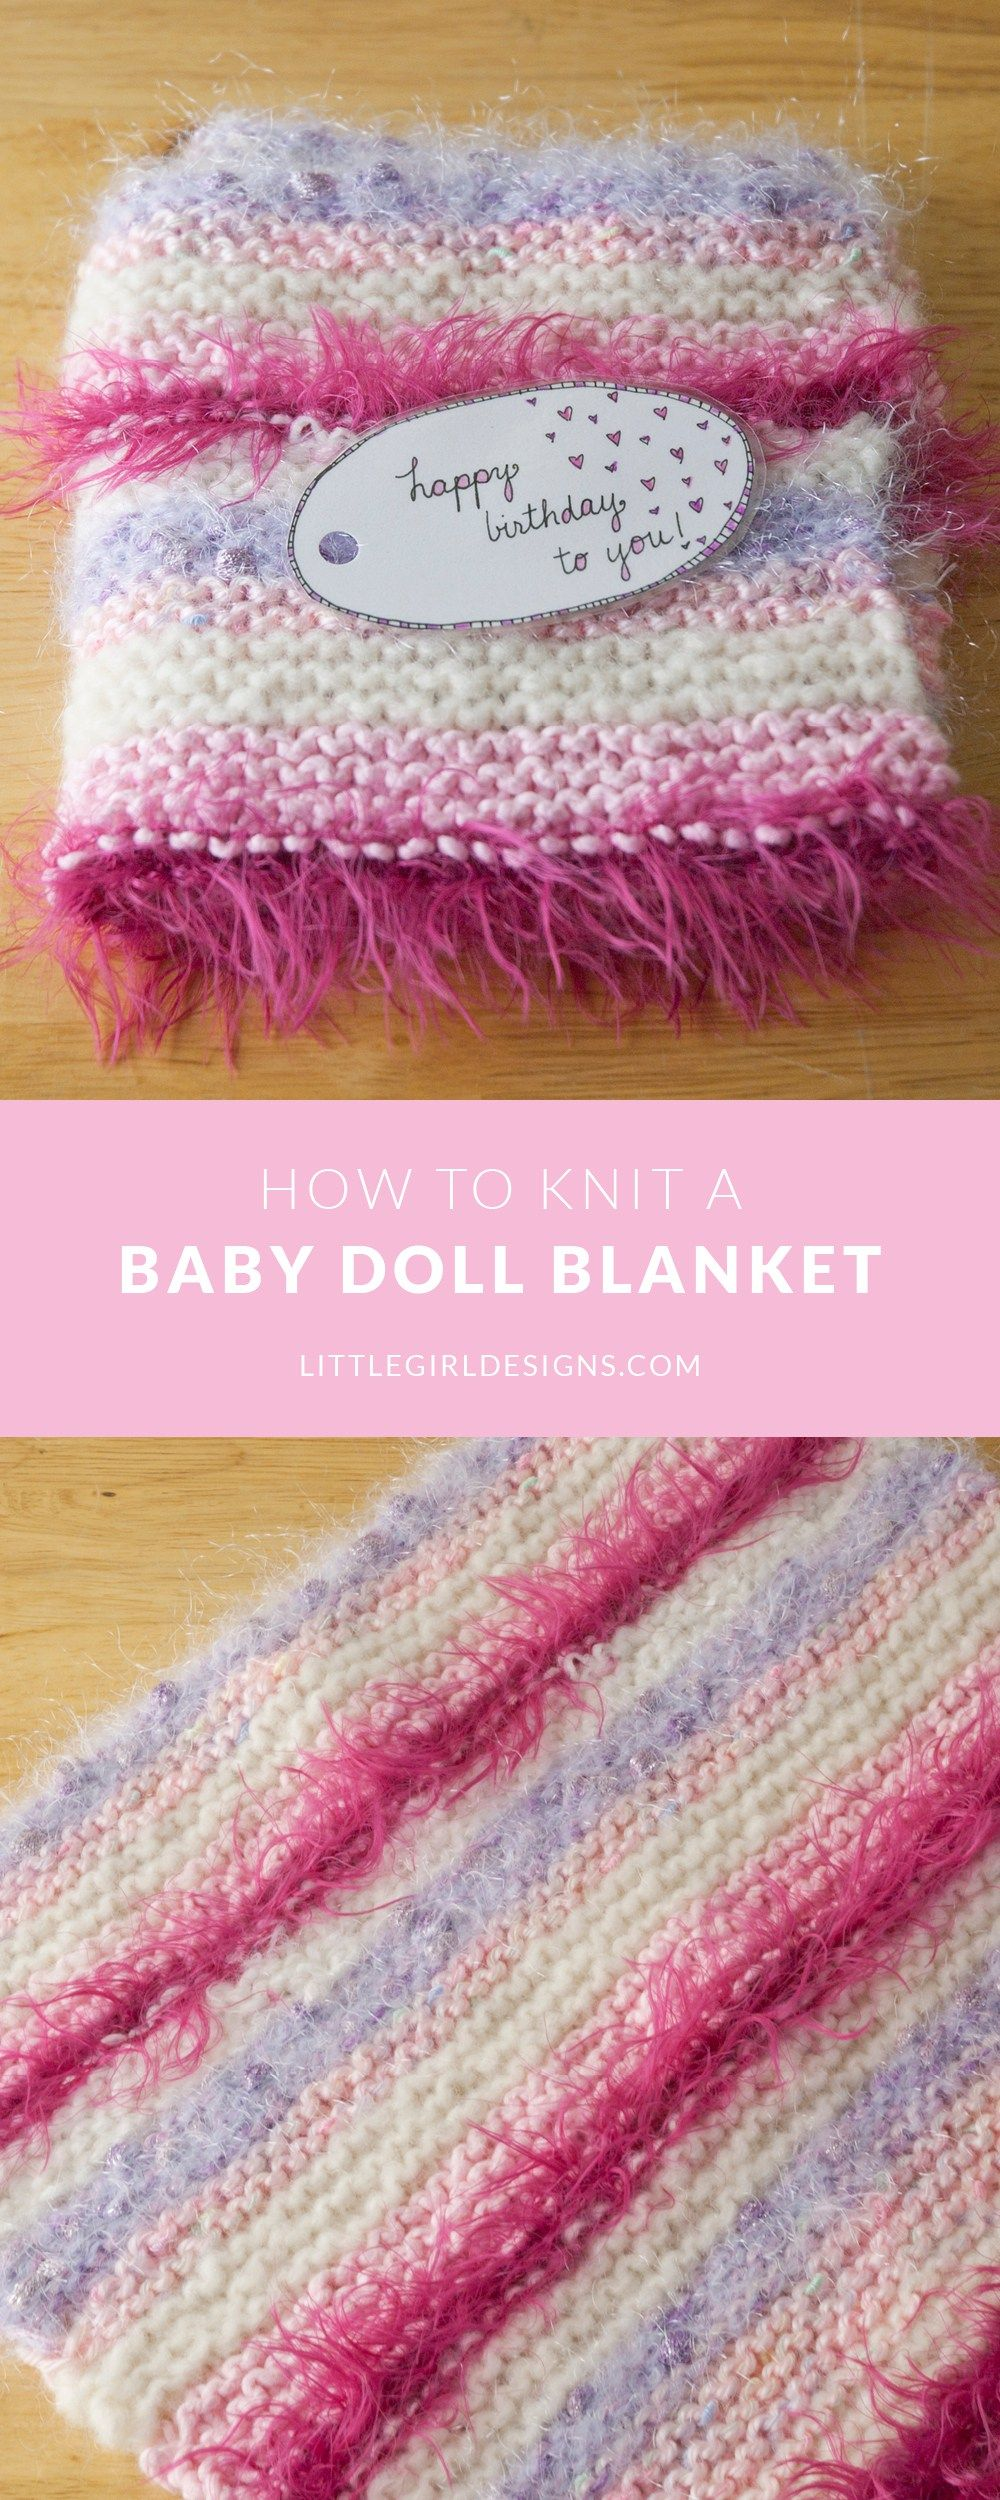 How To Knit A Simple Baby Doll Blanket Thrifty Thursday Lwsl